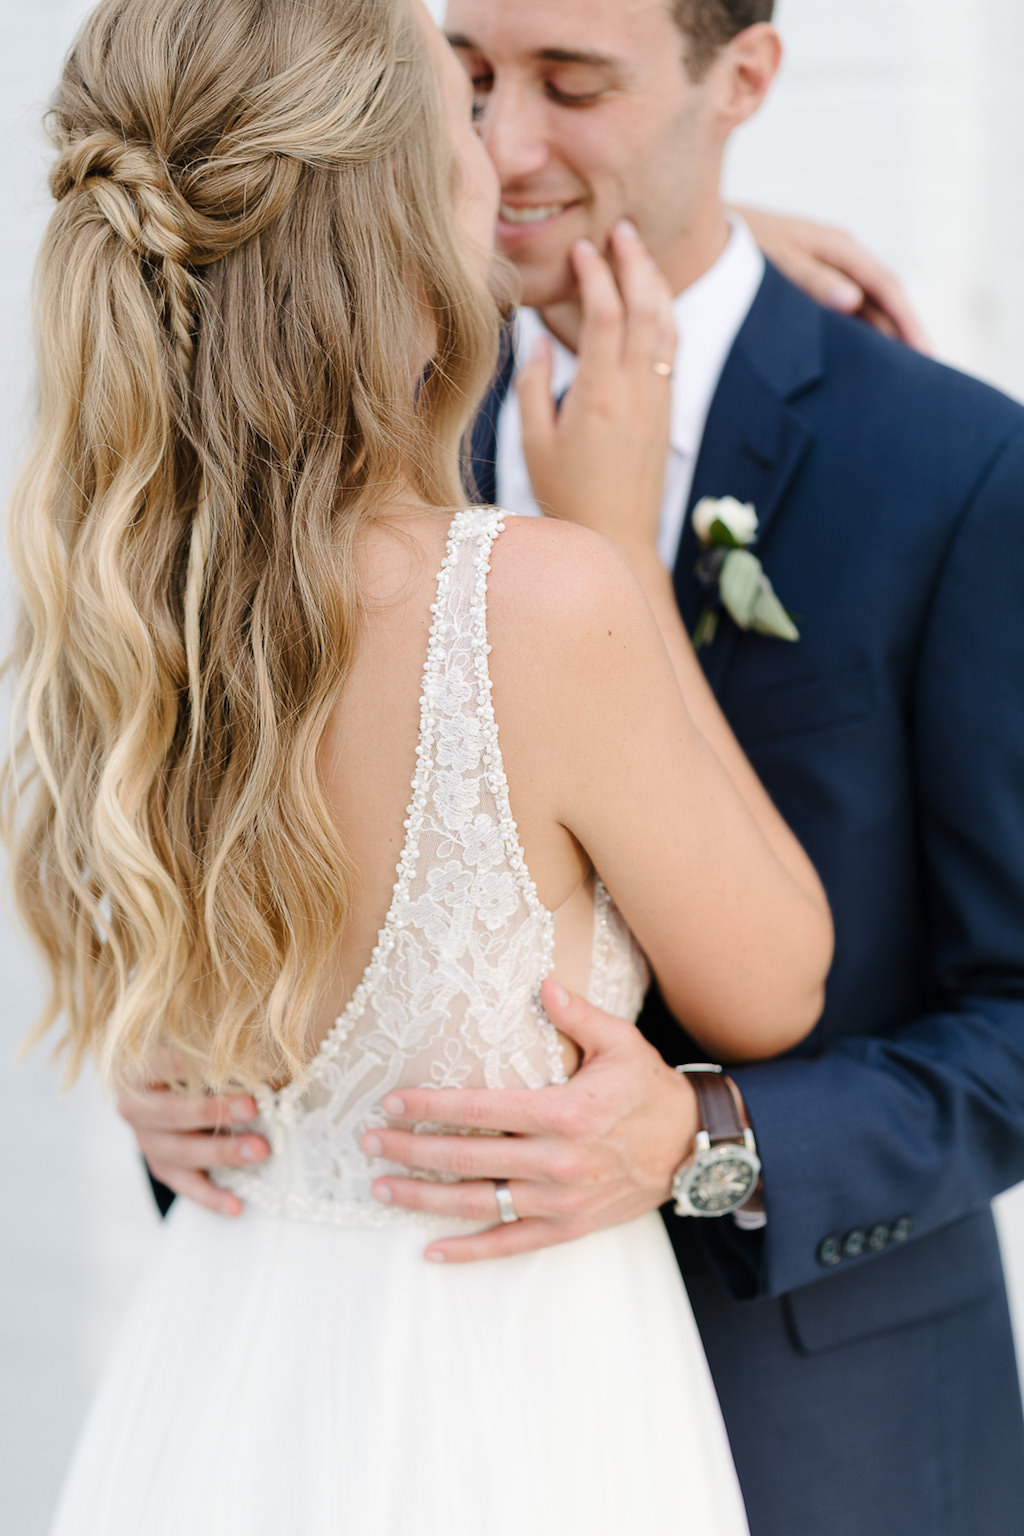 Bride and Groom Wedding Portrait, Groom in Navy Blue Suit and Watch, Bride in White A-Line Illusion Tank Top Strap Plunging V-Neckline Lace and Beaded Bodice Wedding Dress and Braided Half Up-Do